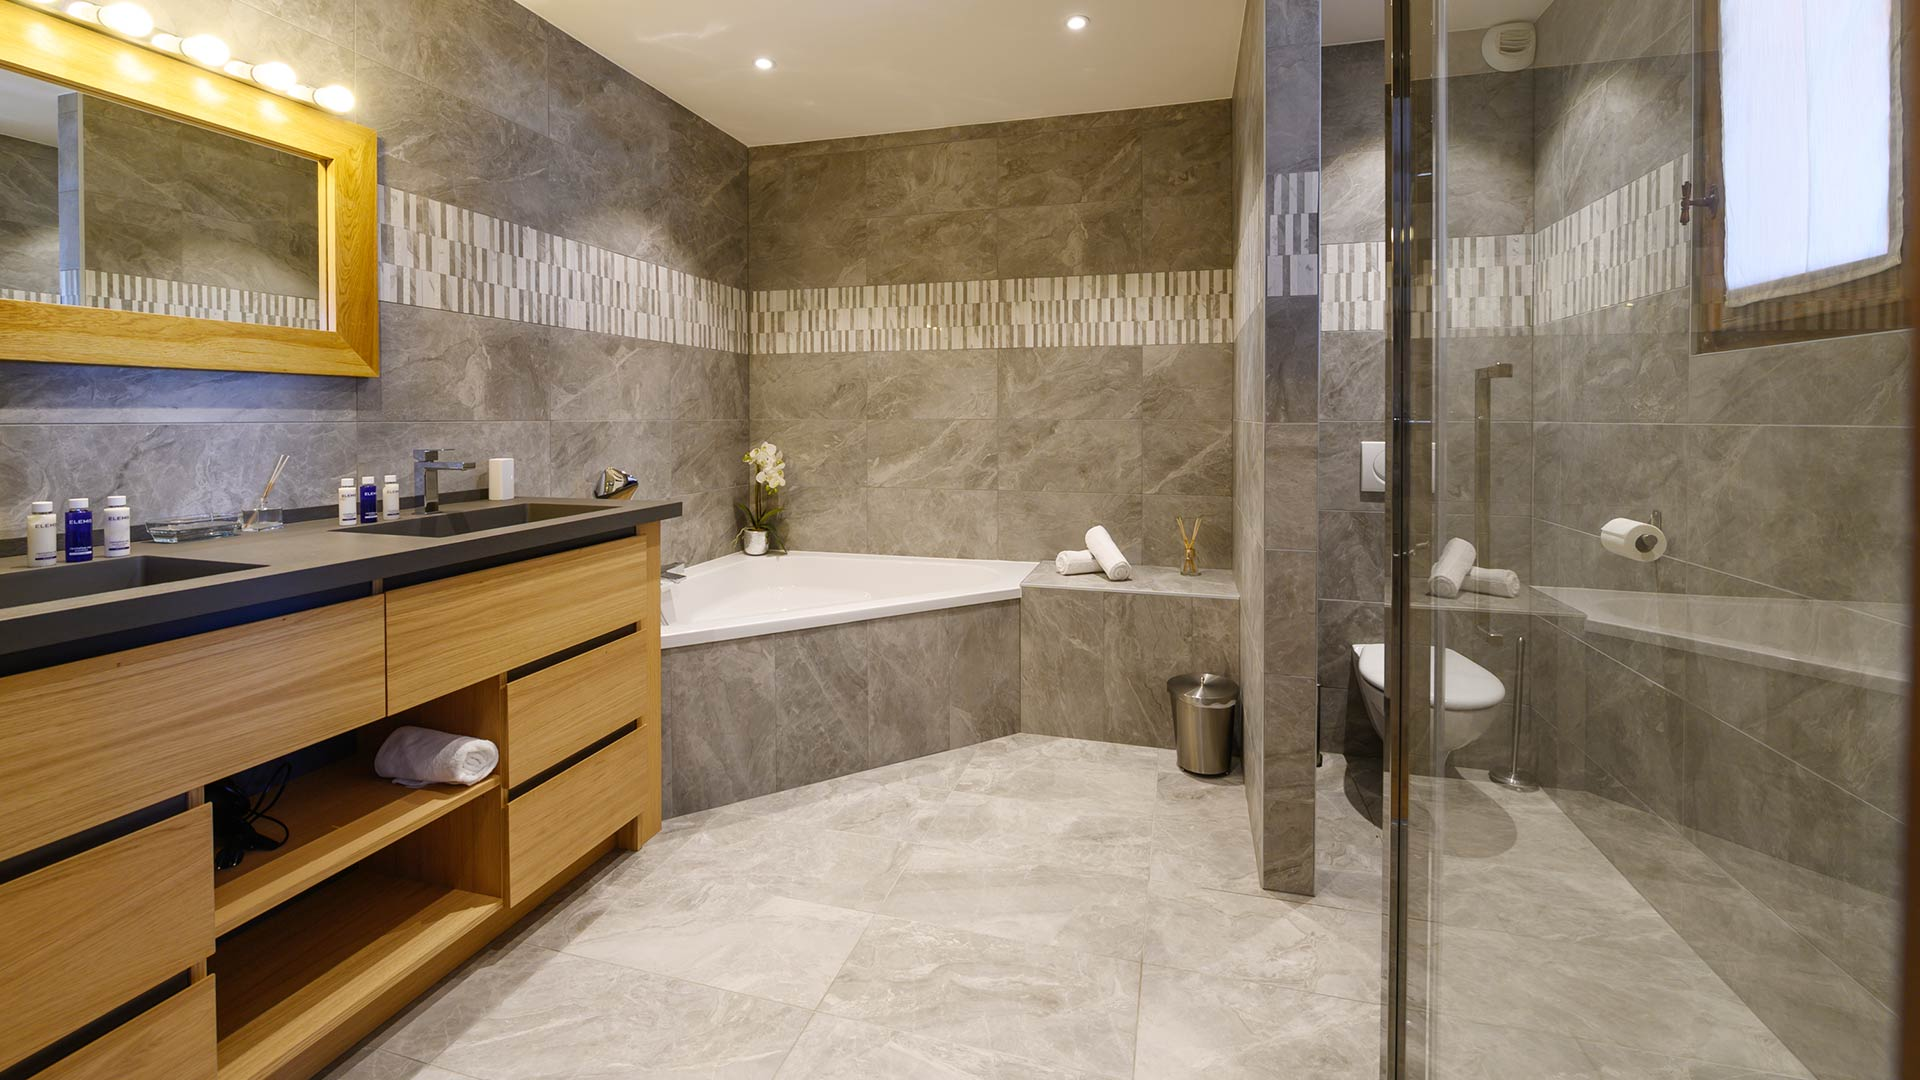 The Peak Chalet Bathroom in Sainte Foy